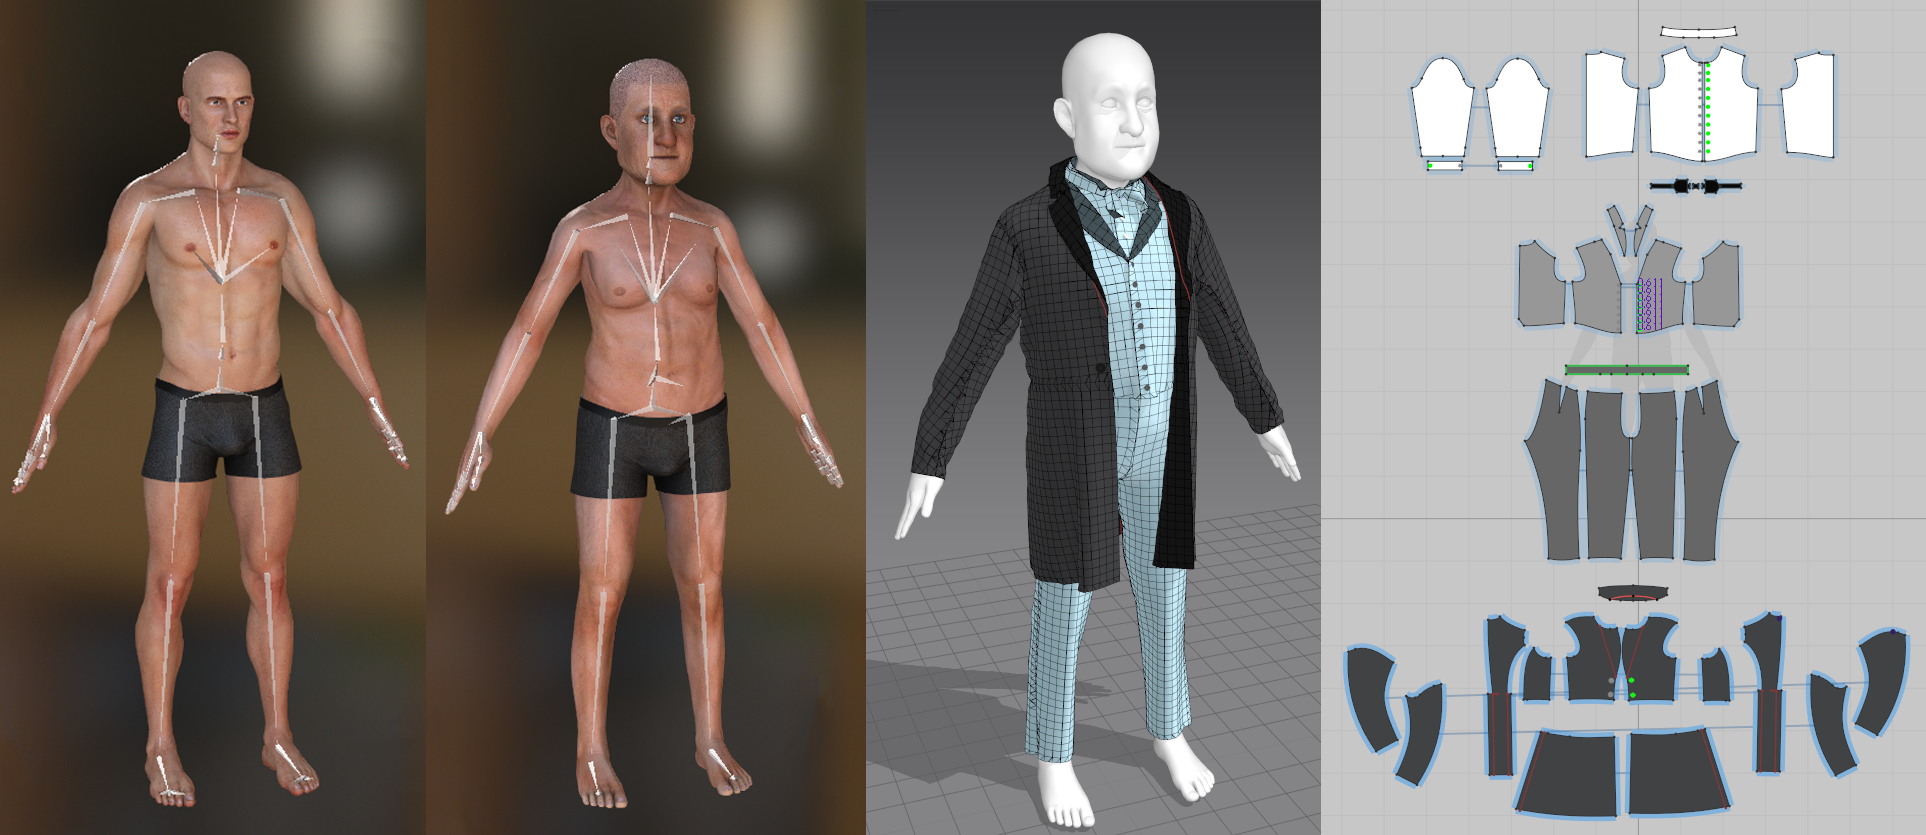 Left, 3D model of exxagerated body propotions. Right, 3D model next to 2D patterns of costume garments.